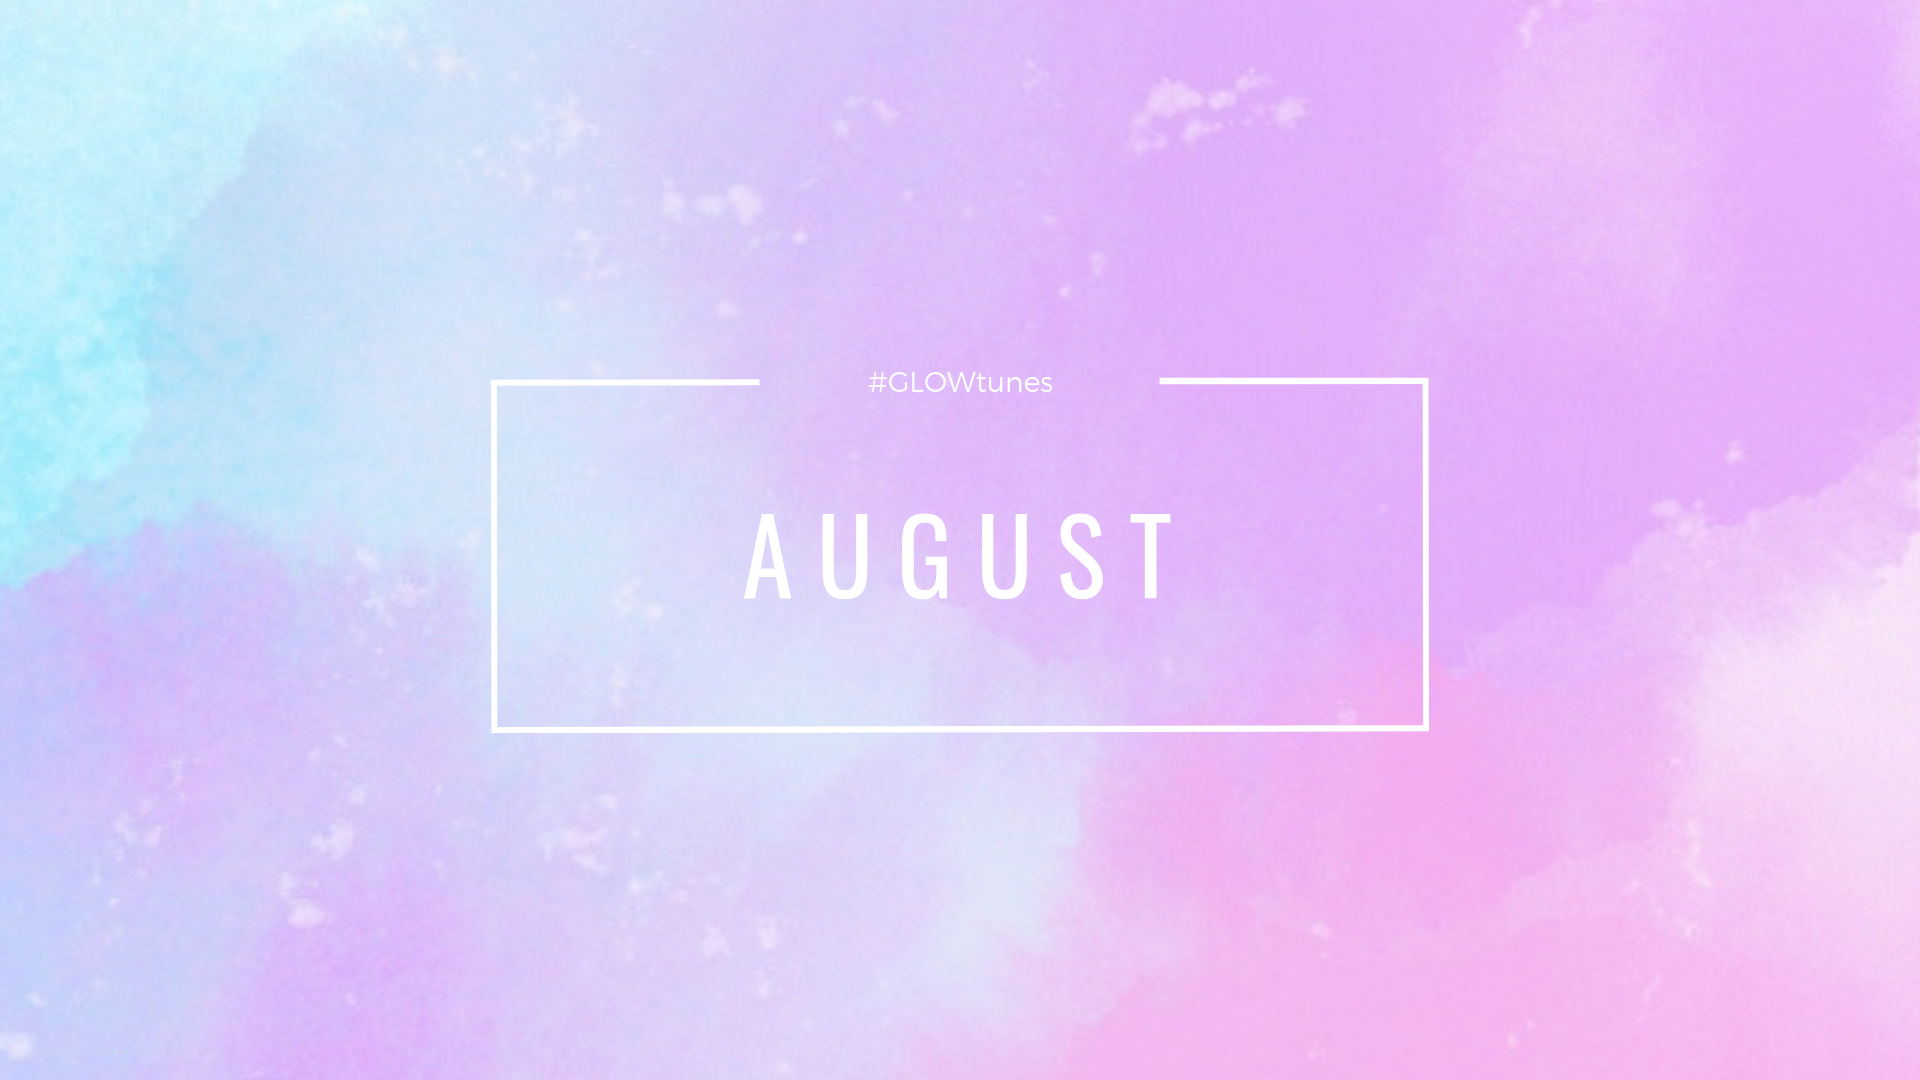 Here is the August 2019 #GLOWtunes playlist, for your listening pleasure. Straight from your glow girls. As music-obsessed chicks, we're excited to share with you a mix of tunes that we love. Some rap, chill, hip hop, electronic, and just good beats.  ENJOY xx  LISTEN HERE ::  https://open.spotify.com/user/howyouglow/playlist/7gsUmaA6osbhof2iAGtEuN?si=OLBi5T7pQc6aVX6hzYdMJg